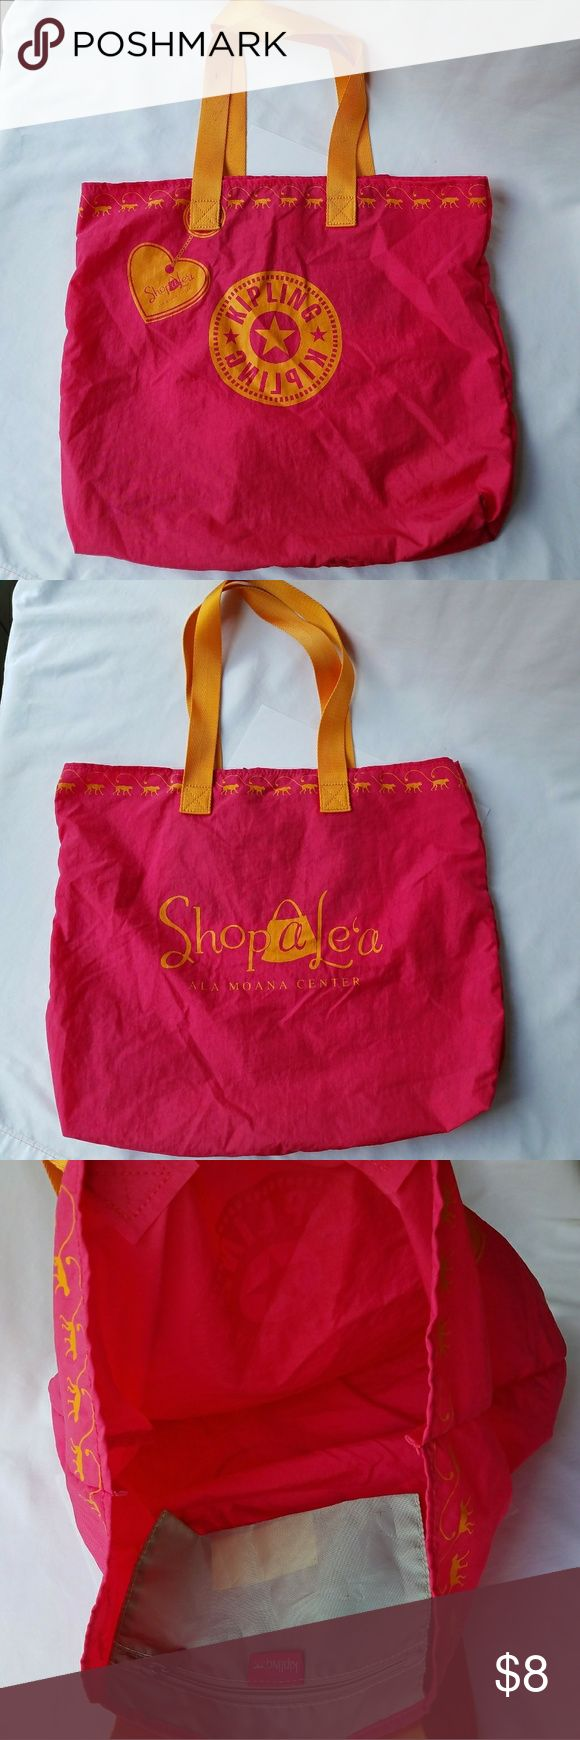 Kipling Nylon Tote Bag 100% Authentic  Item has been used/Normal Wear  Comes as seen in pictures   *Serious Buyers Only  **Check Out All the other items i have for sale Kipling Bags Totes